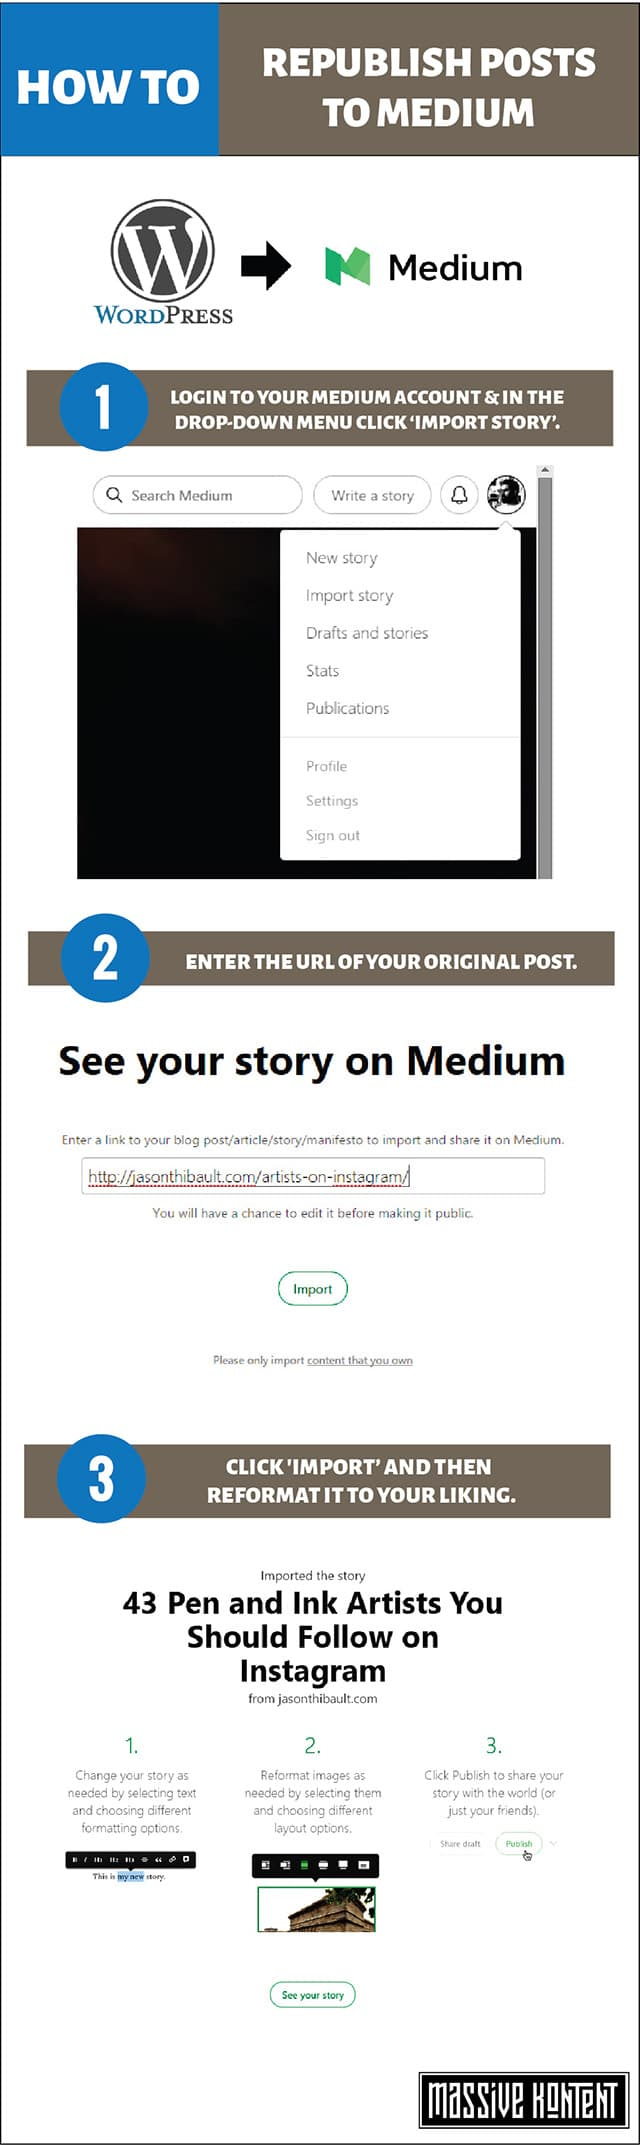 How to republish content on Medium